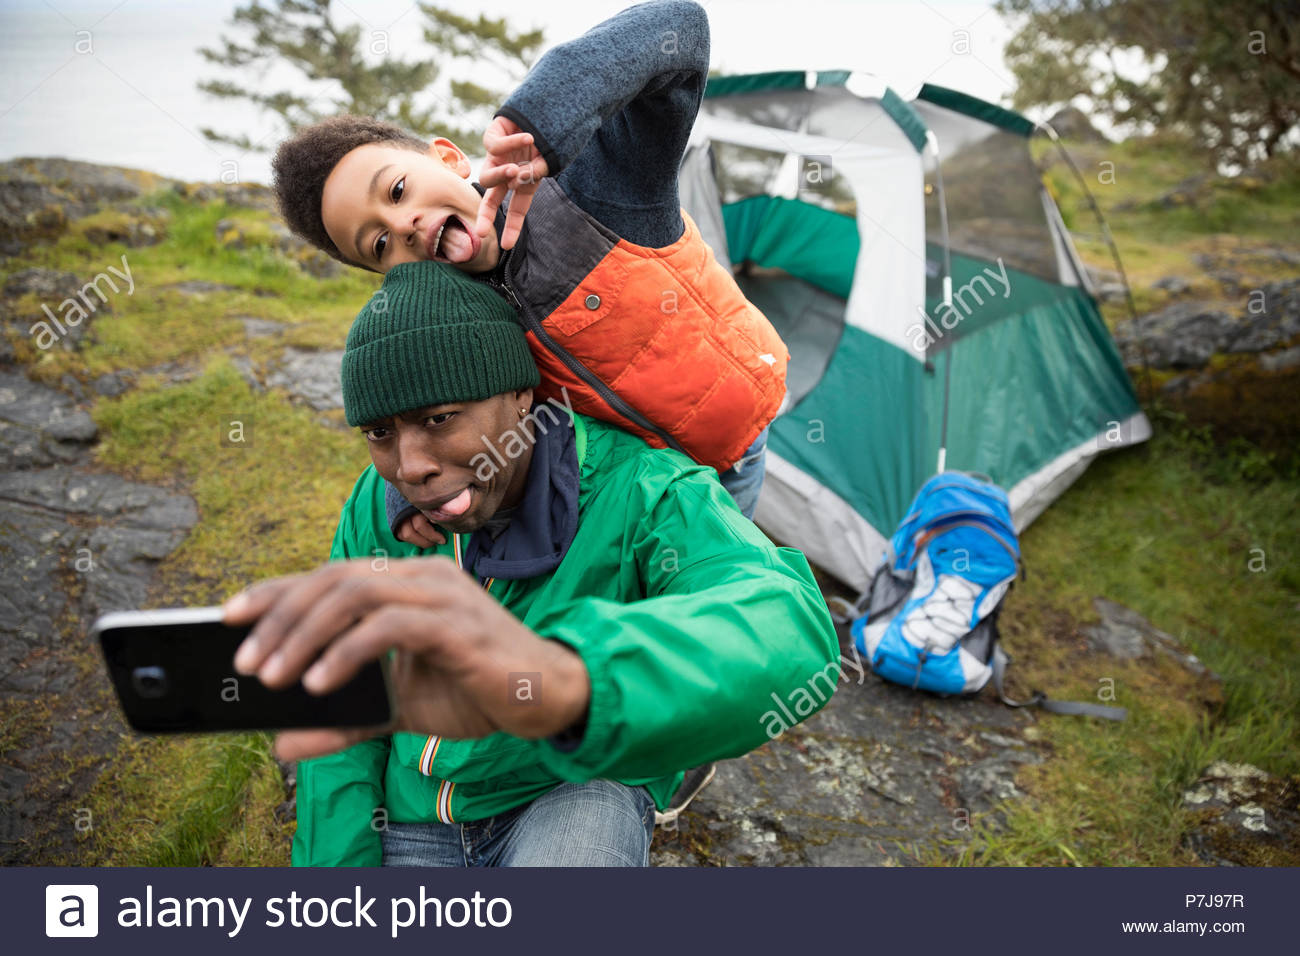 Playful father and son making faces, taking selfie at campsite - Stock Image